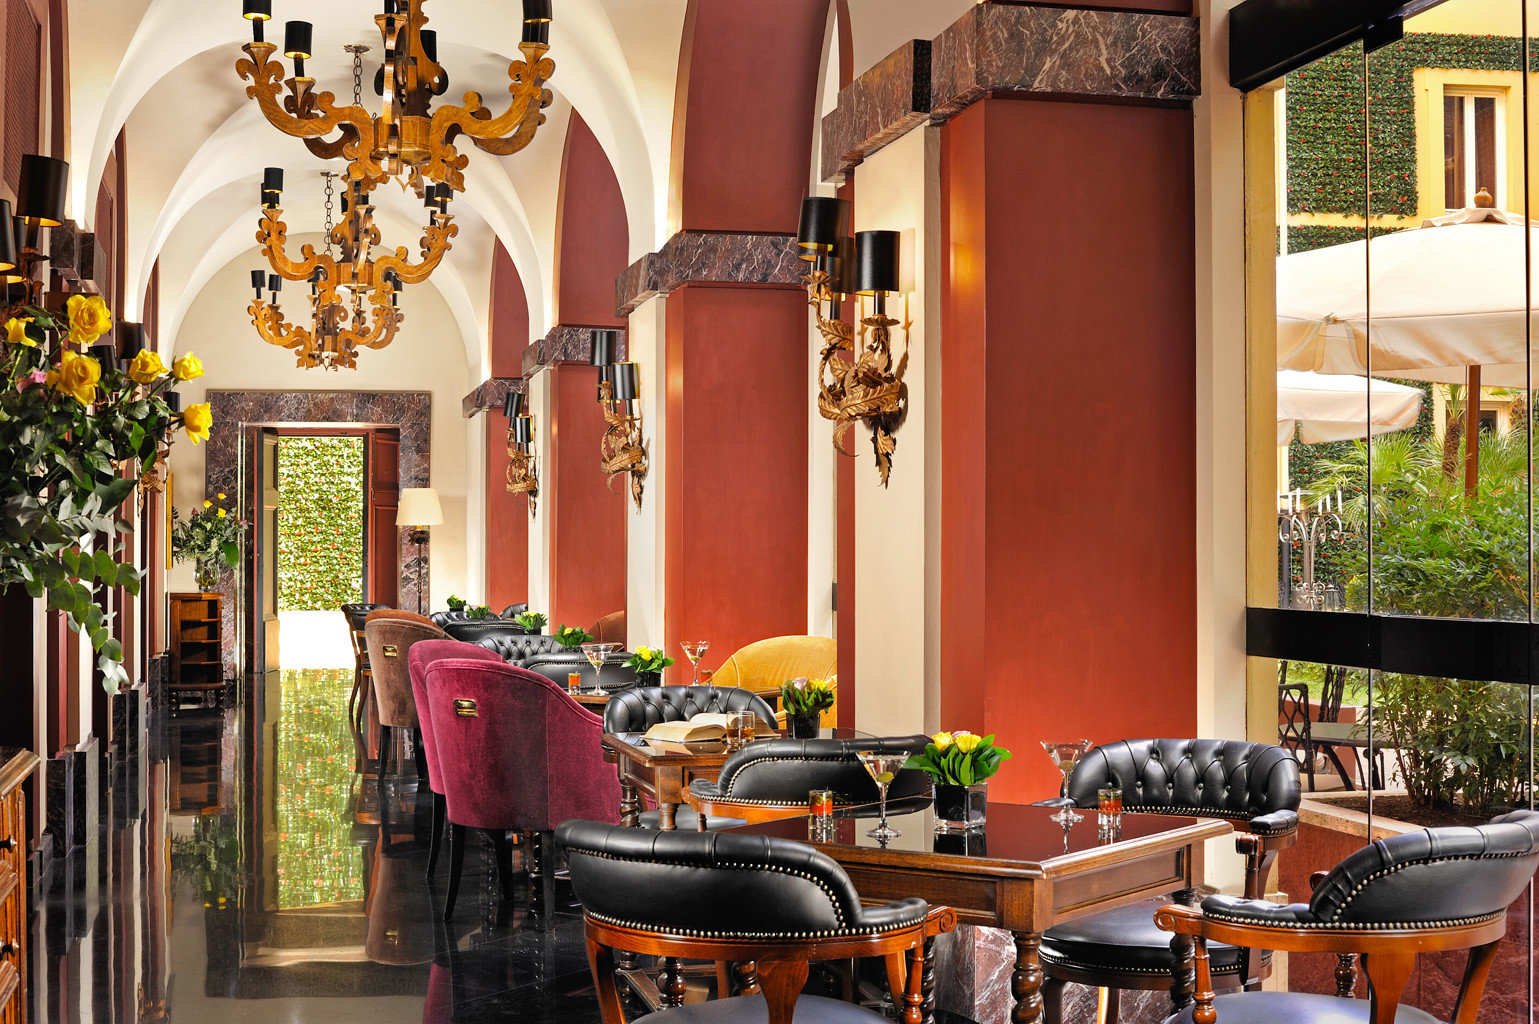 Classic Dining restaurant home Resort hacienda Lobby cluttered dining table